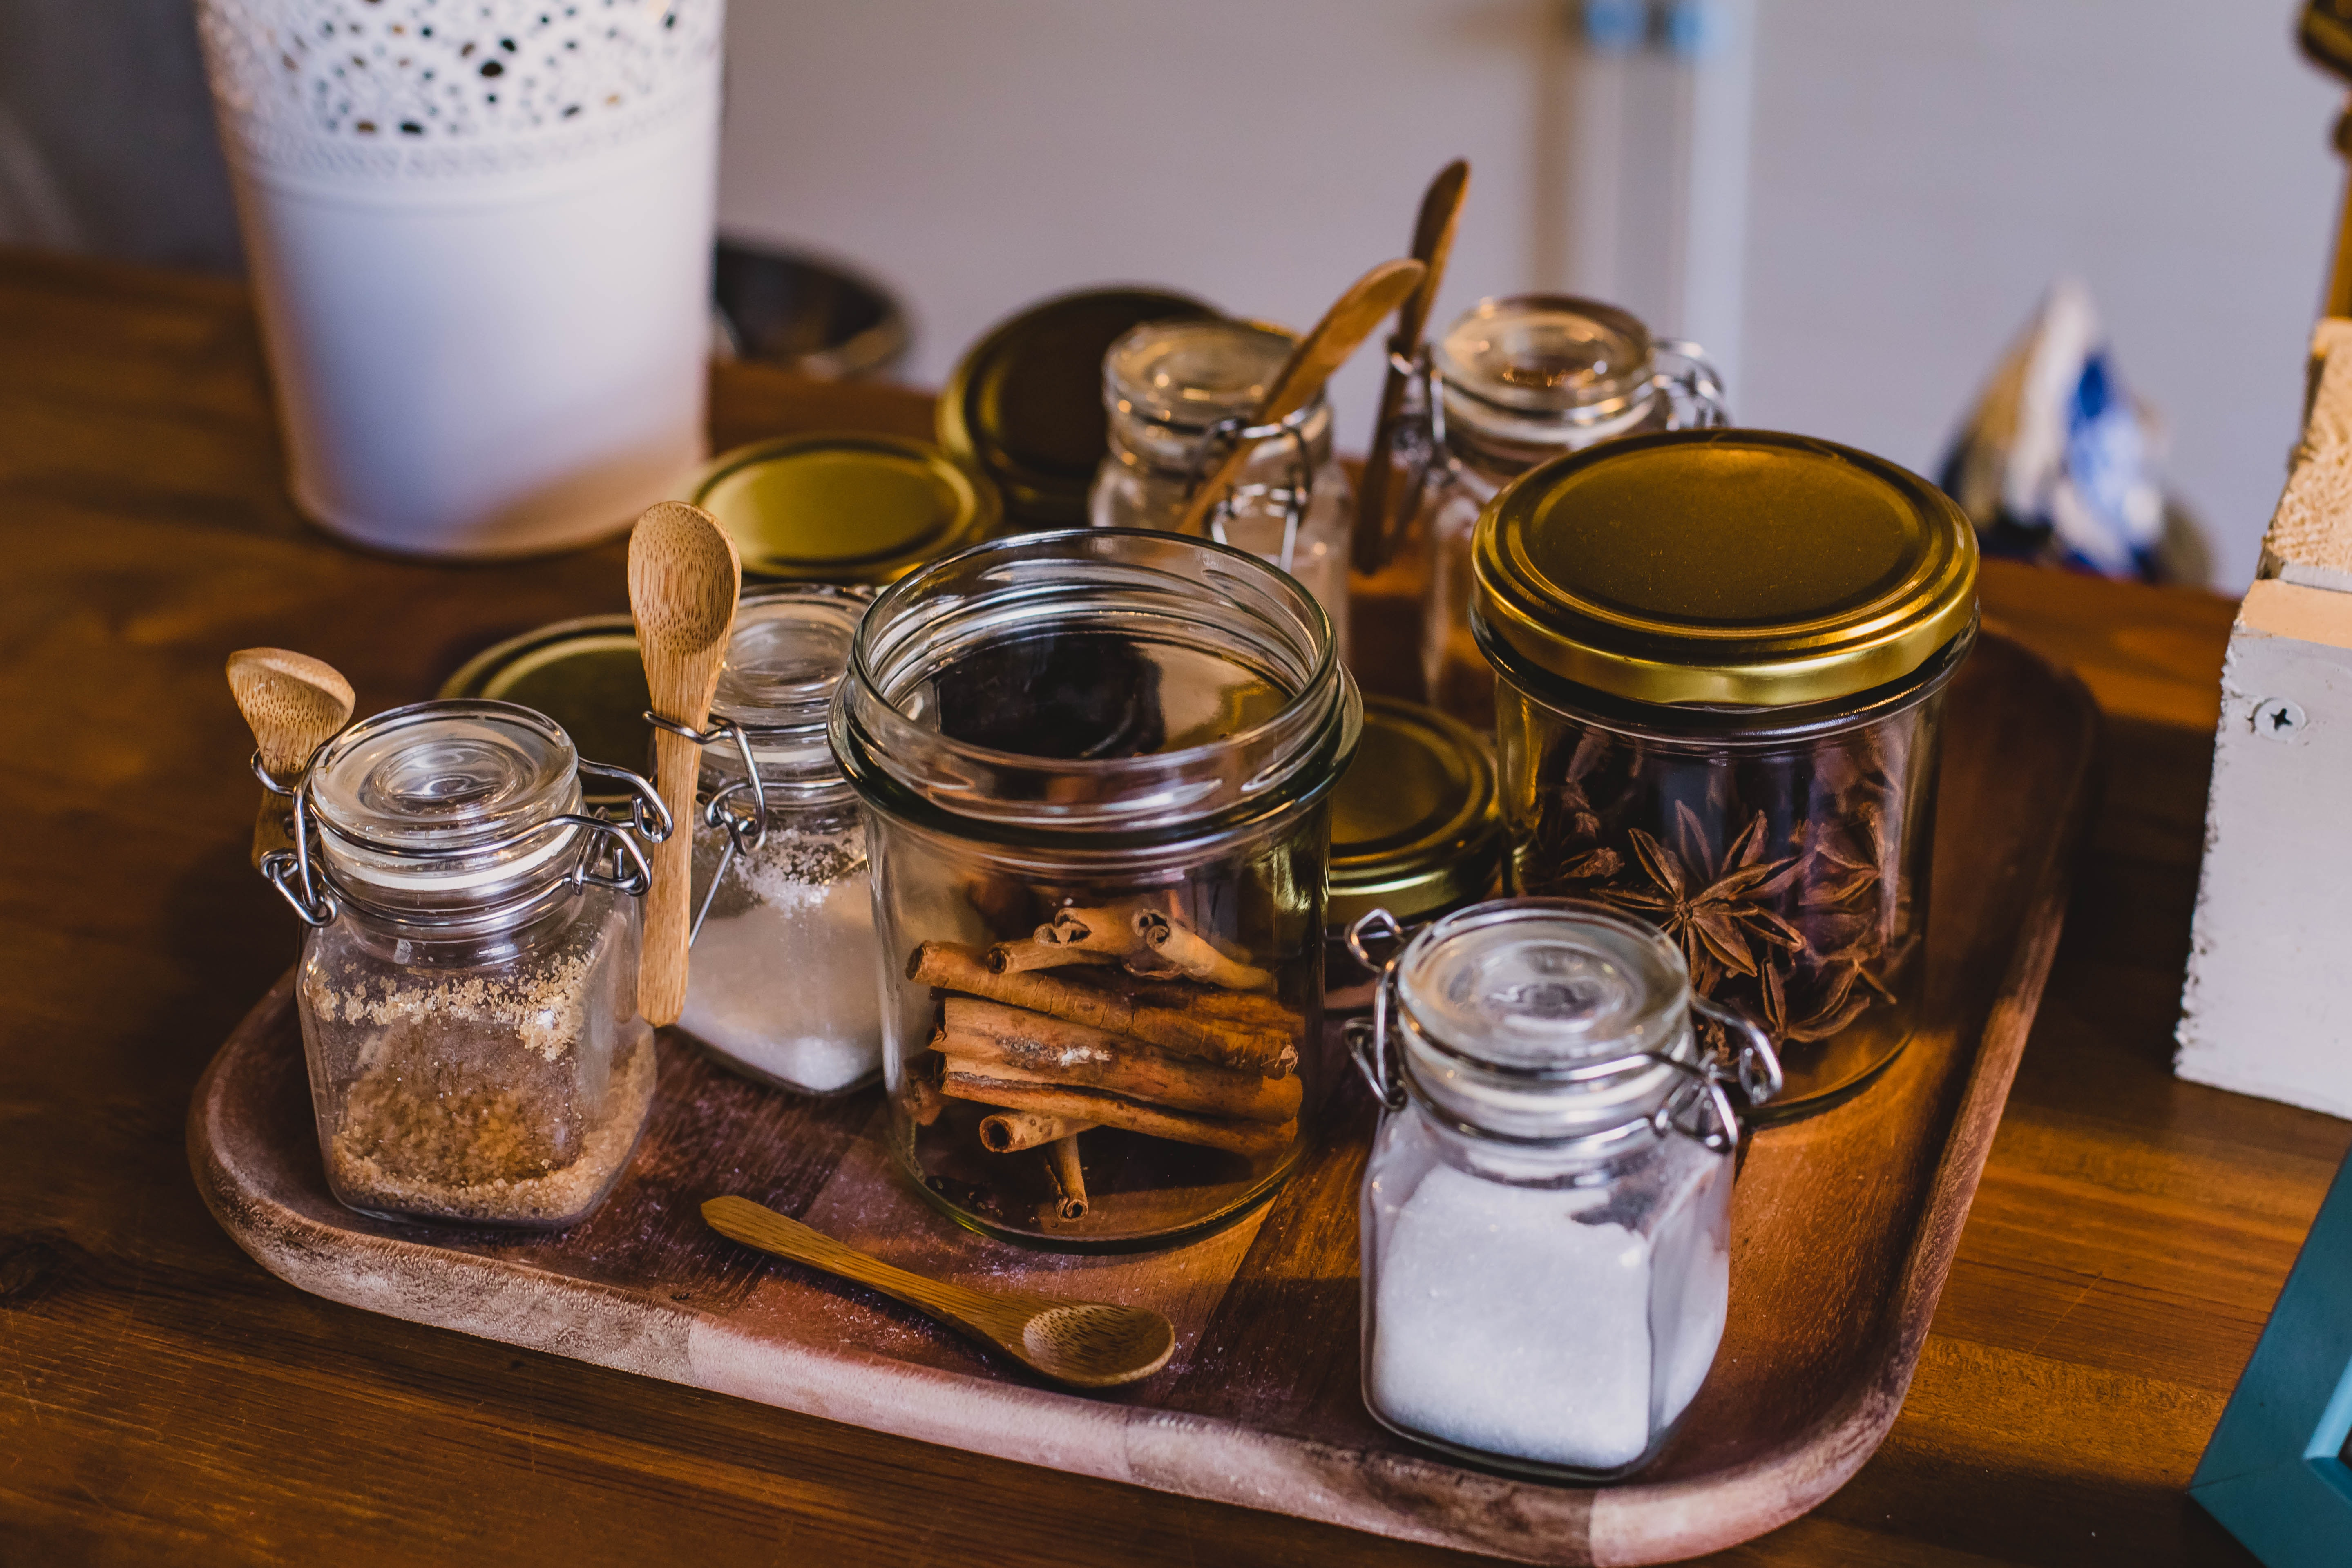 clear-glass-jars-on-top-of-tray-1516424